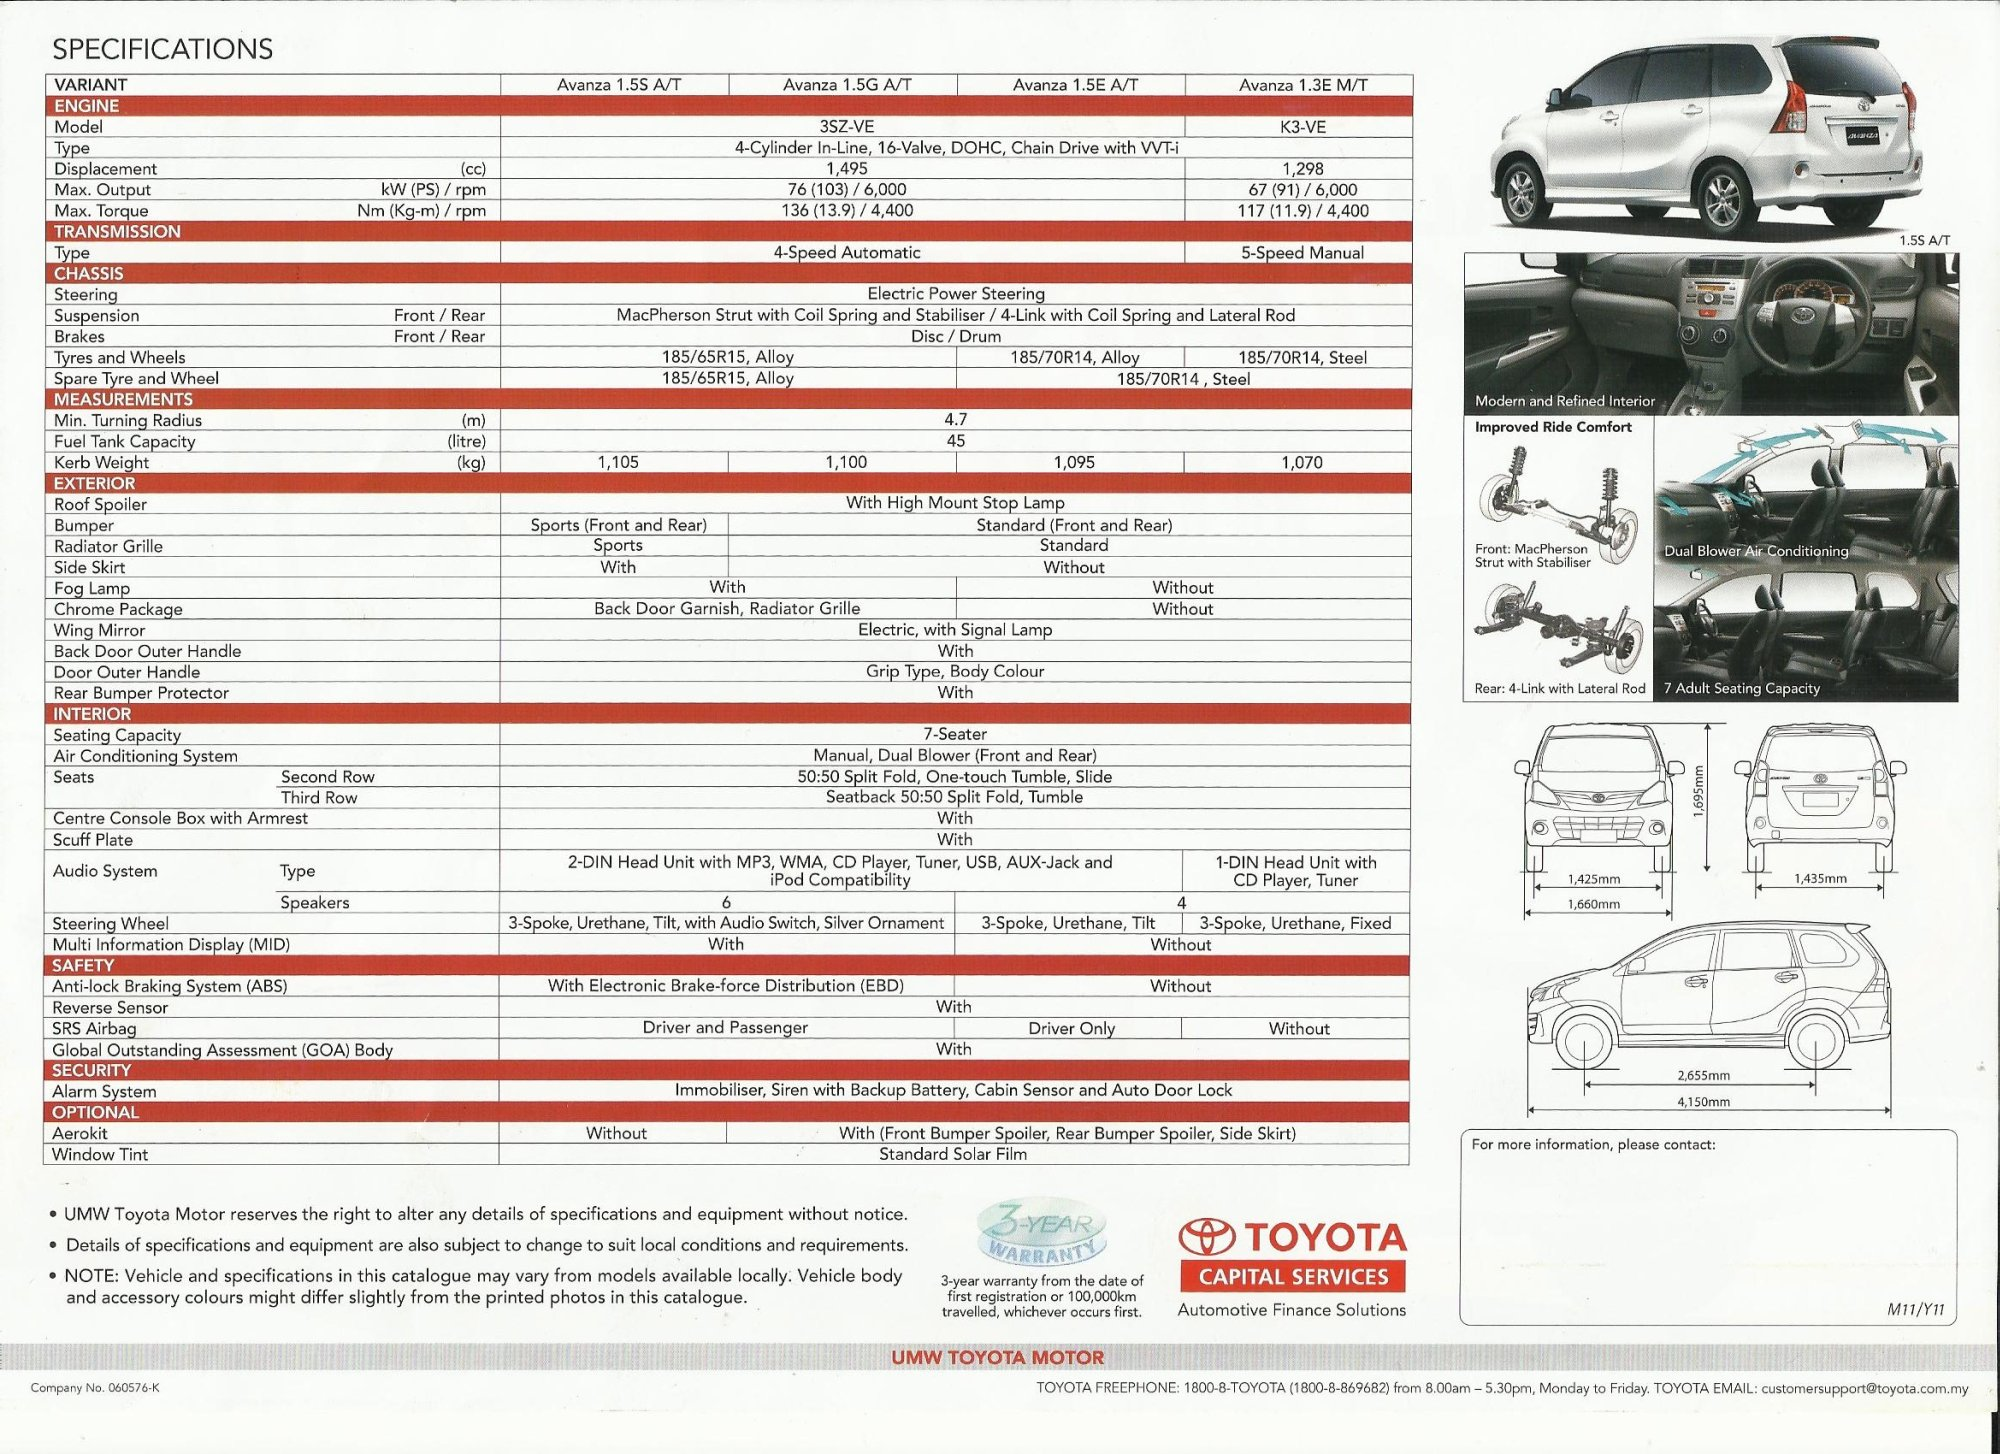 Toyota Avanza – brochure's out on the upcoming facelift